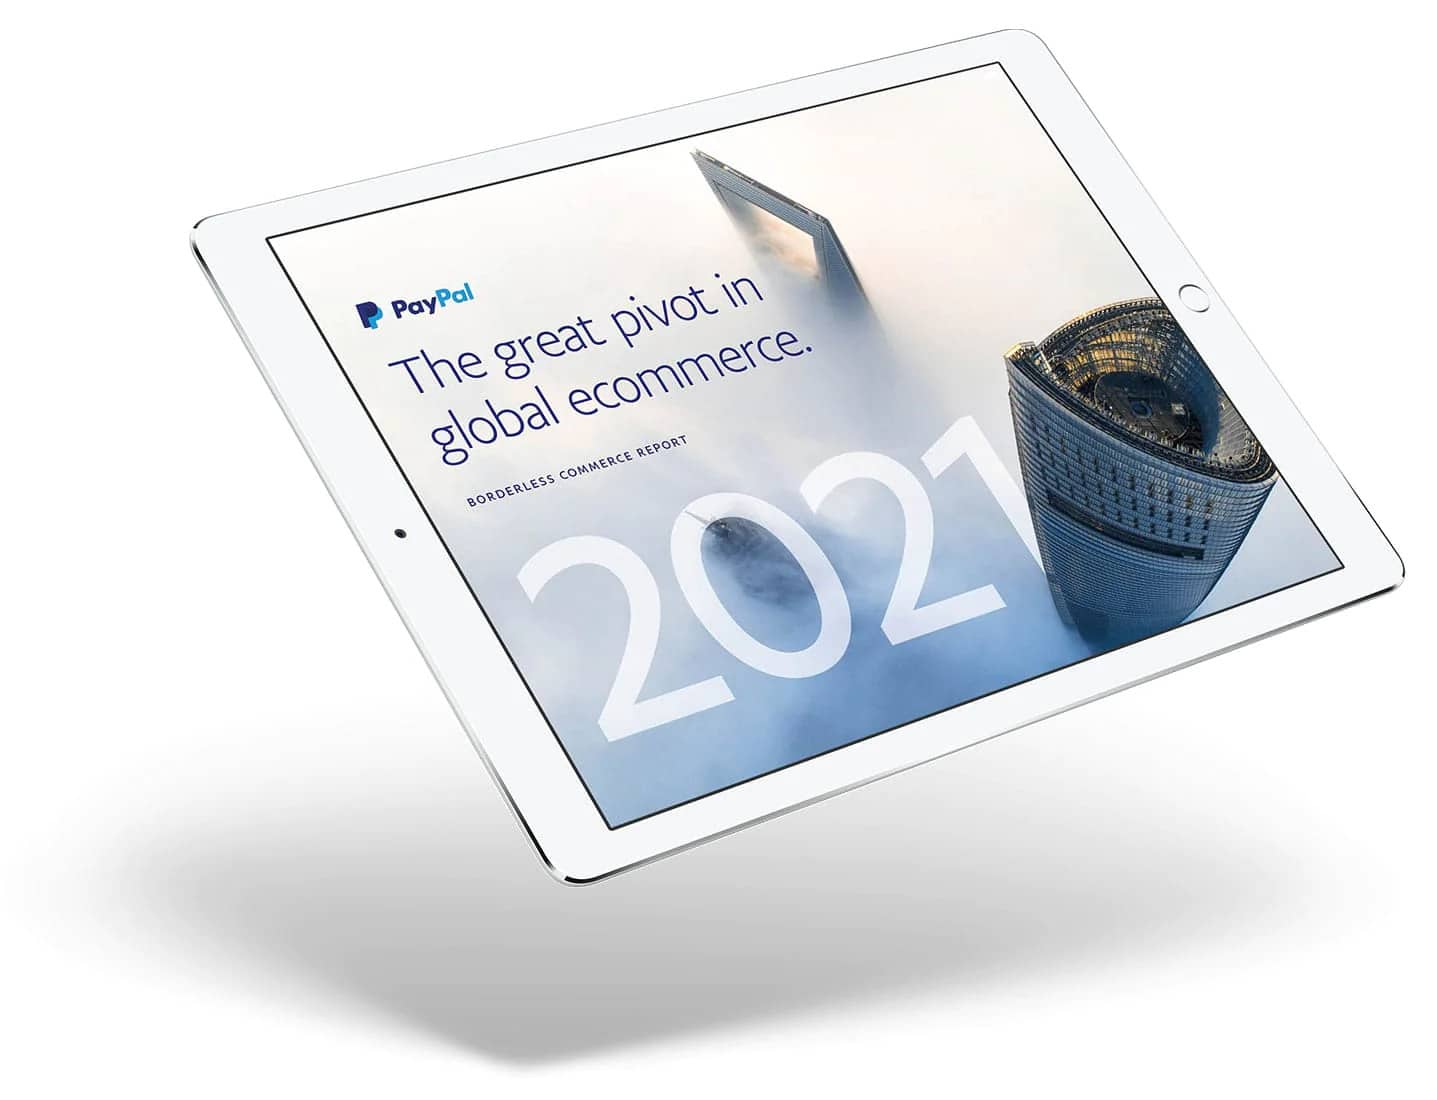 The great pivot in global ecommerce